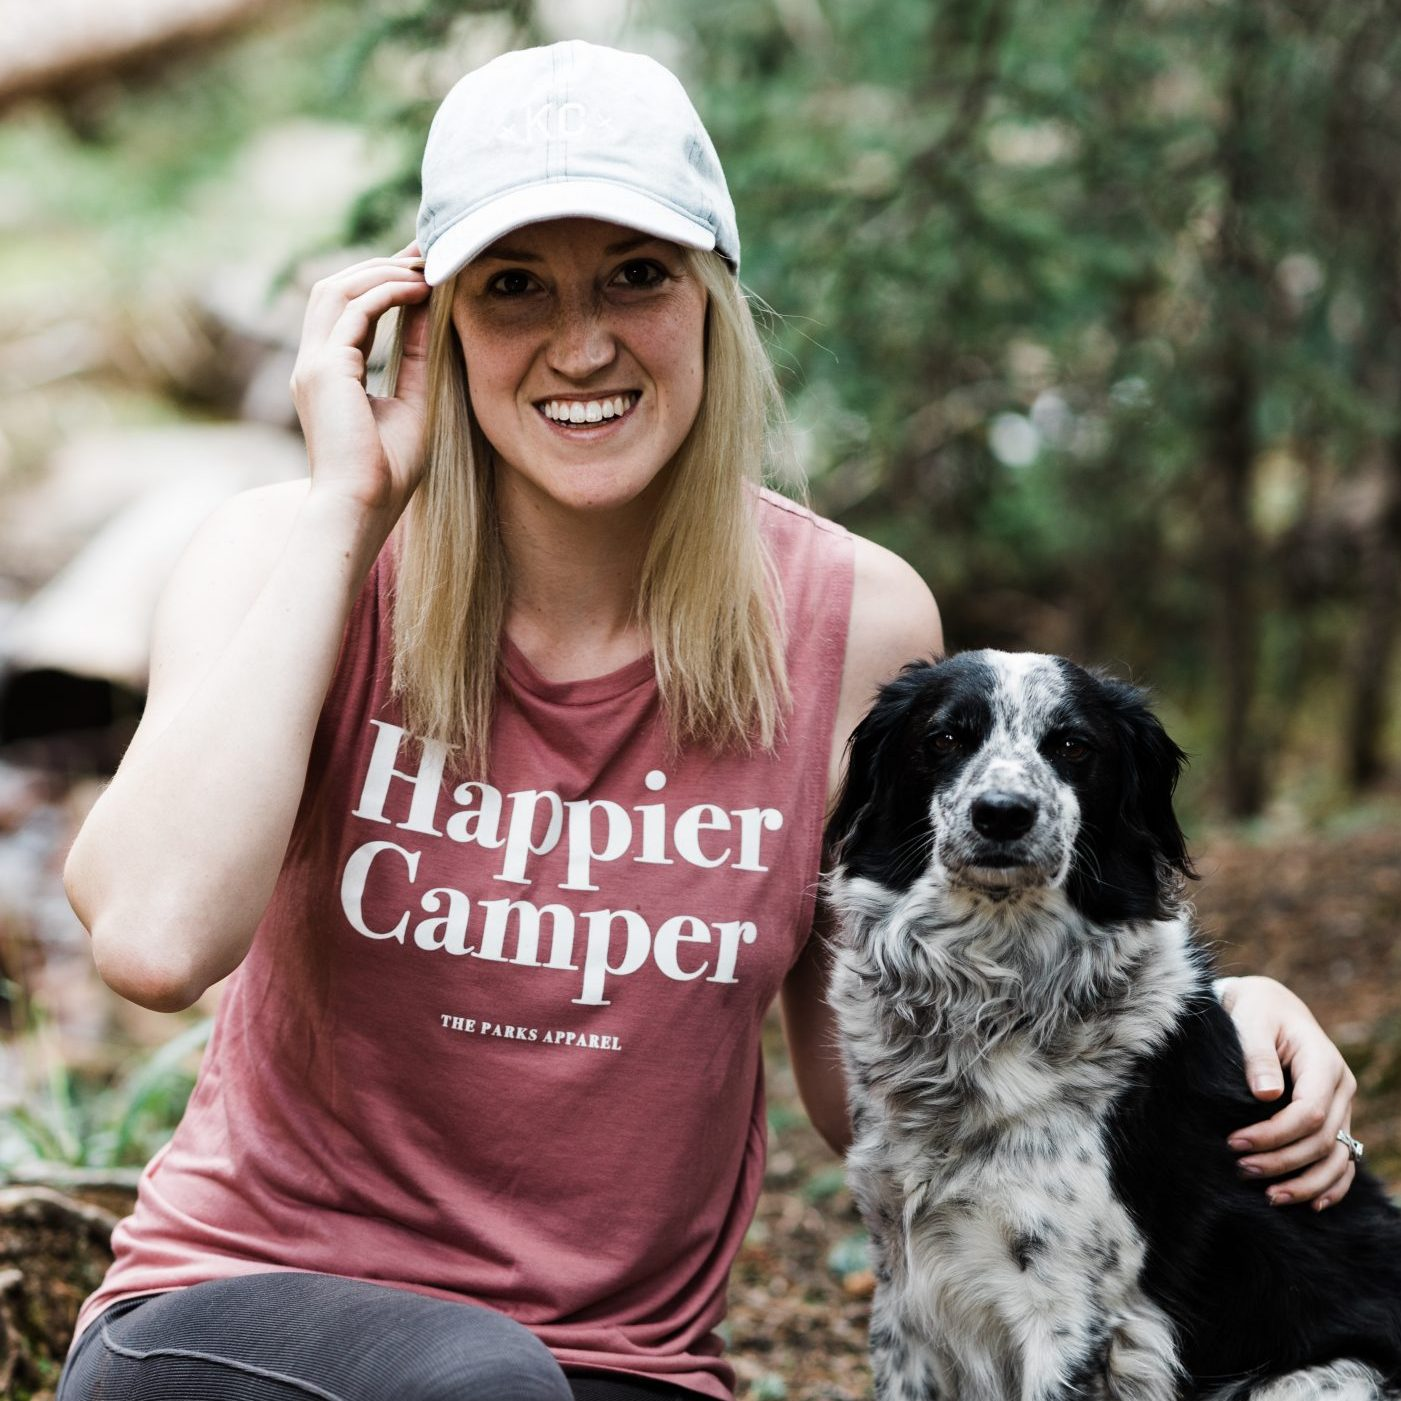 Search + Rescue Community Member, Kira, with her dog.